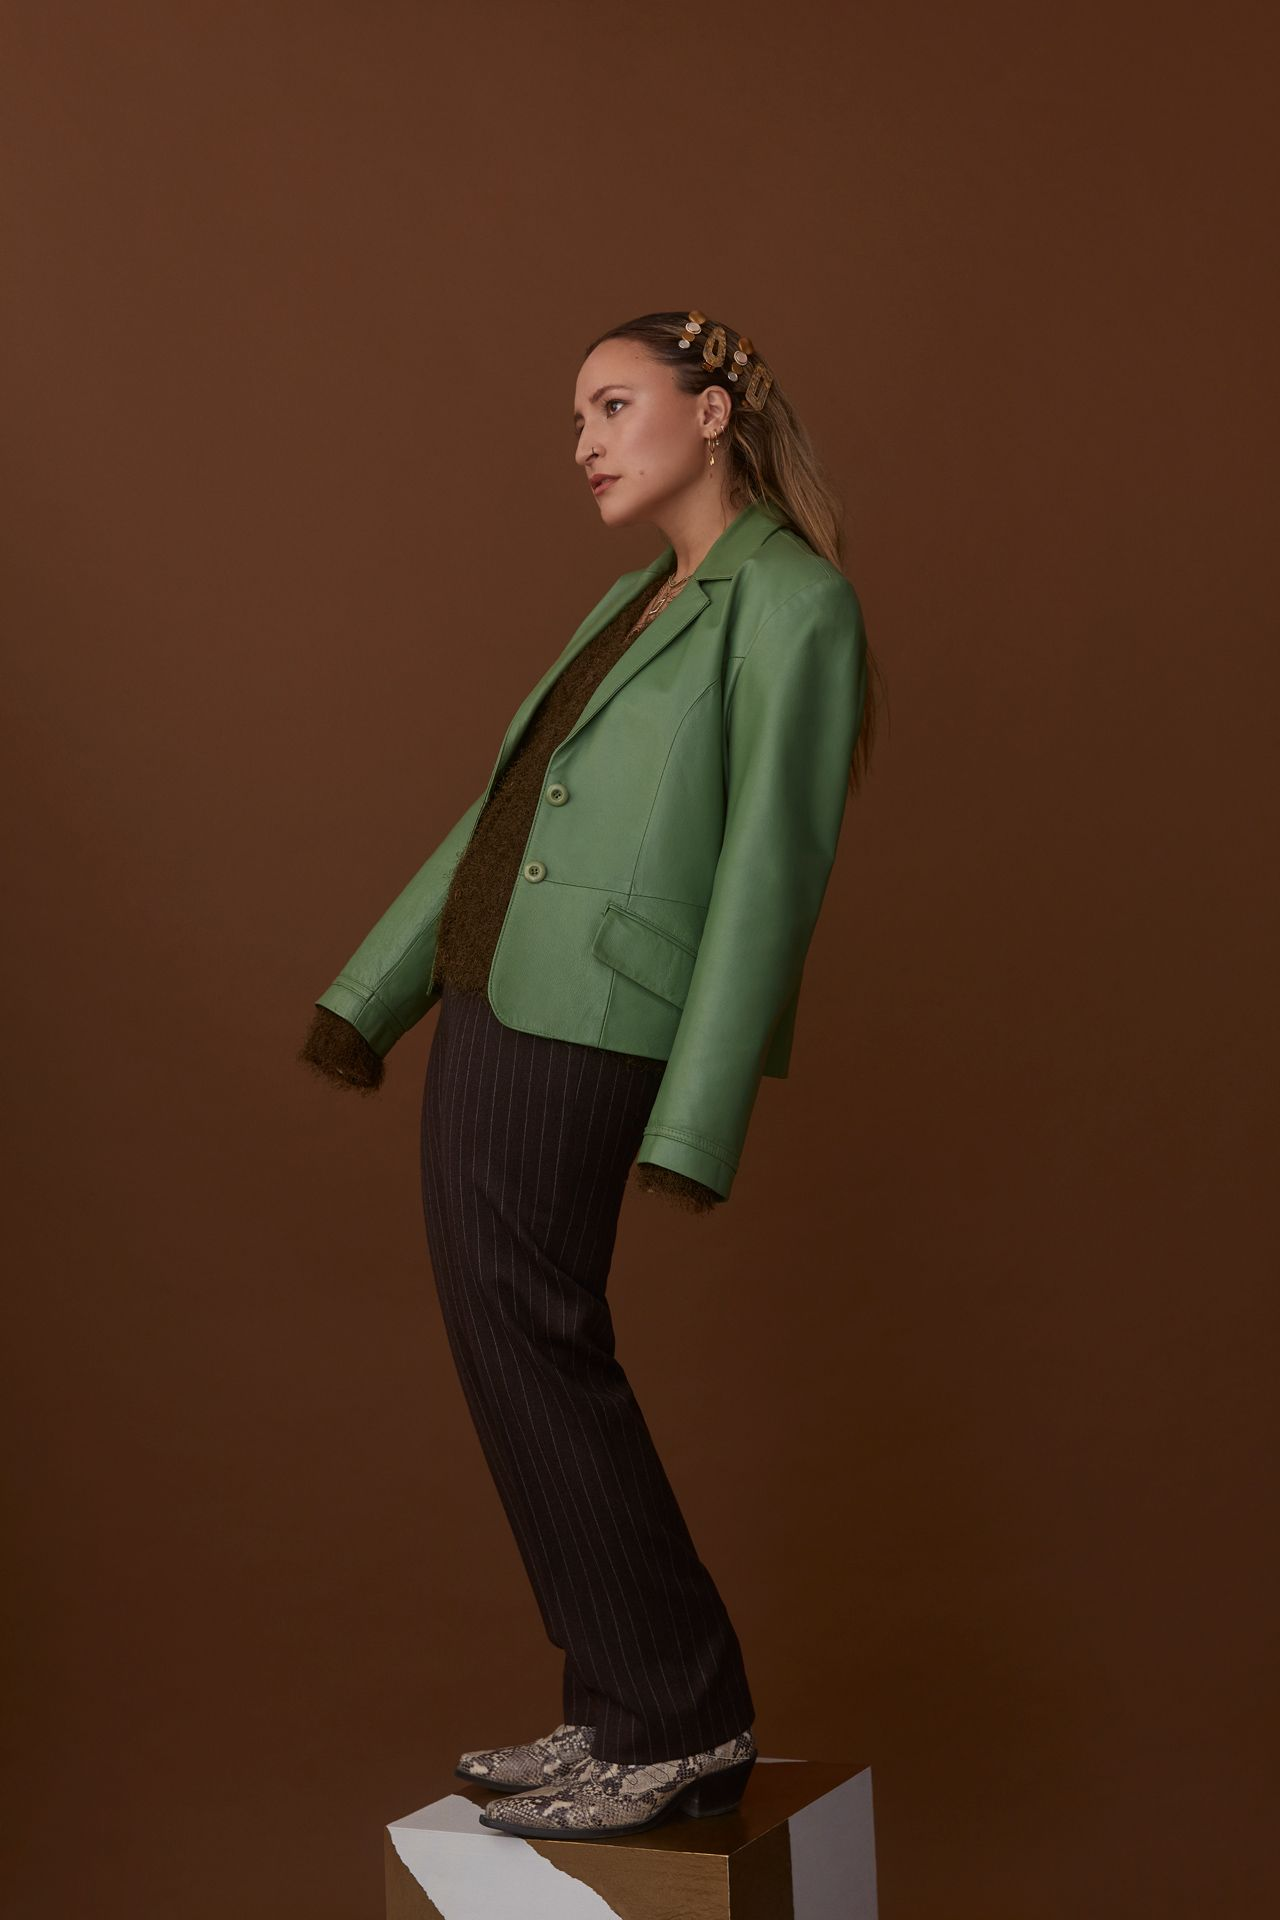 female model standing on block lightly leaning back wearing bright green leather jacket brown sweater fine-stripped black pants and snake skin shoes on brown background photographed by Kelly Jacob for LEV